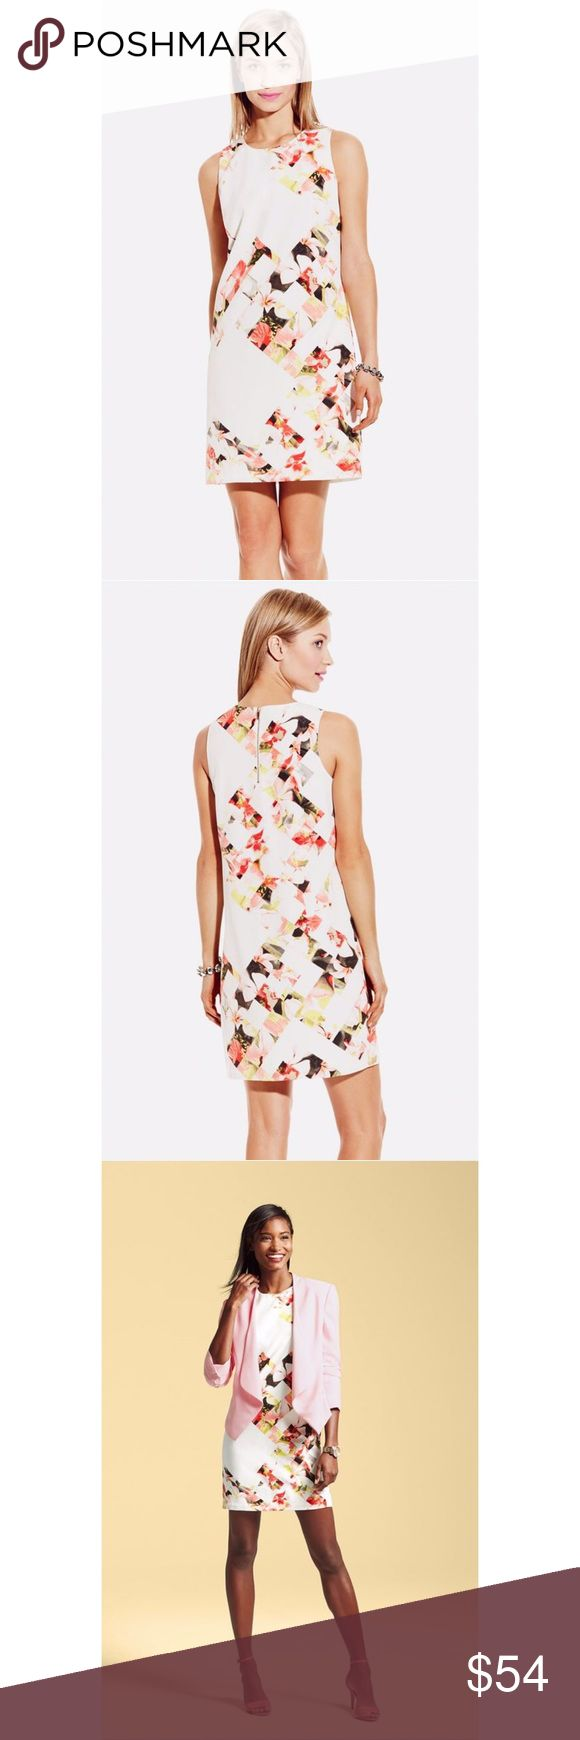 """{Vince Camuto} 'Broken Photo' Floral Print Dress The floral print gets a modern twist with pixelated blocks of solid white dotted amongst the lush tropical blooms of a sleeveless woven shift in a figure-skimming silhouette. Approx. 37"""" regular length. Exposed back-zip closure. Lined. 100% polyester. Machine wash cold, line dry. By Vince Camuto; imported. Condition: Excellent! Vince Camuto Dresses Mini"""